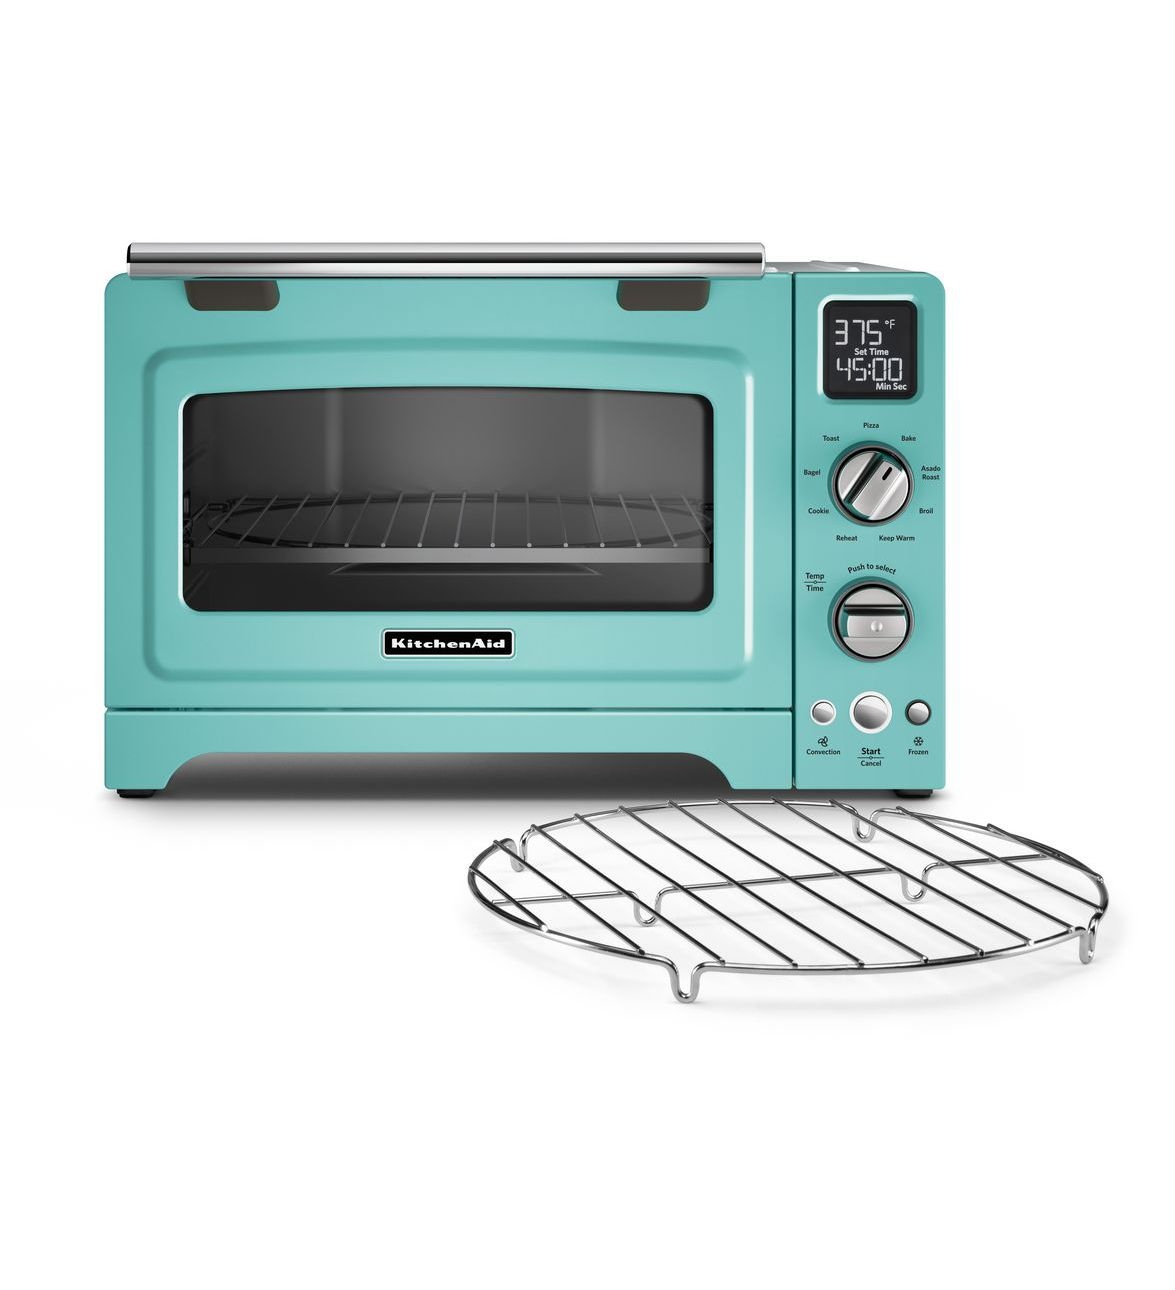 Kitchenaid Countertop Convection Oven Dimensions : KitchenAid? 12? Convection Digital Countertop Oven The ...